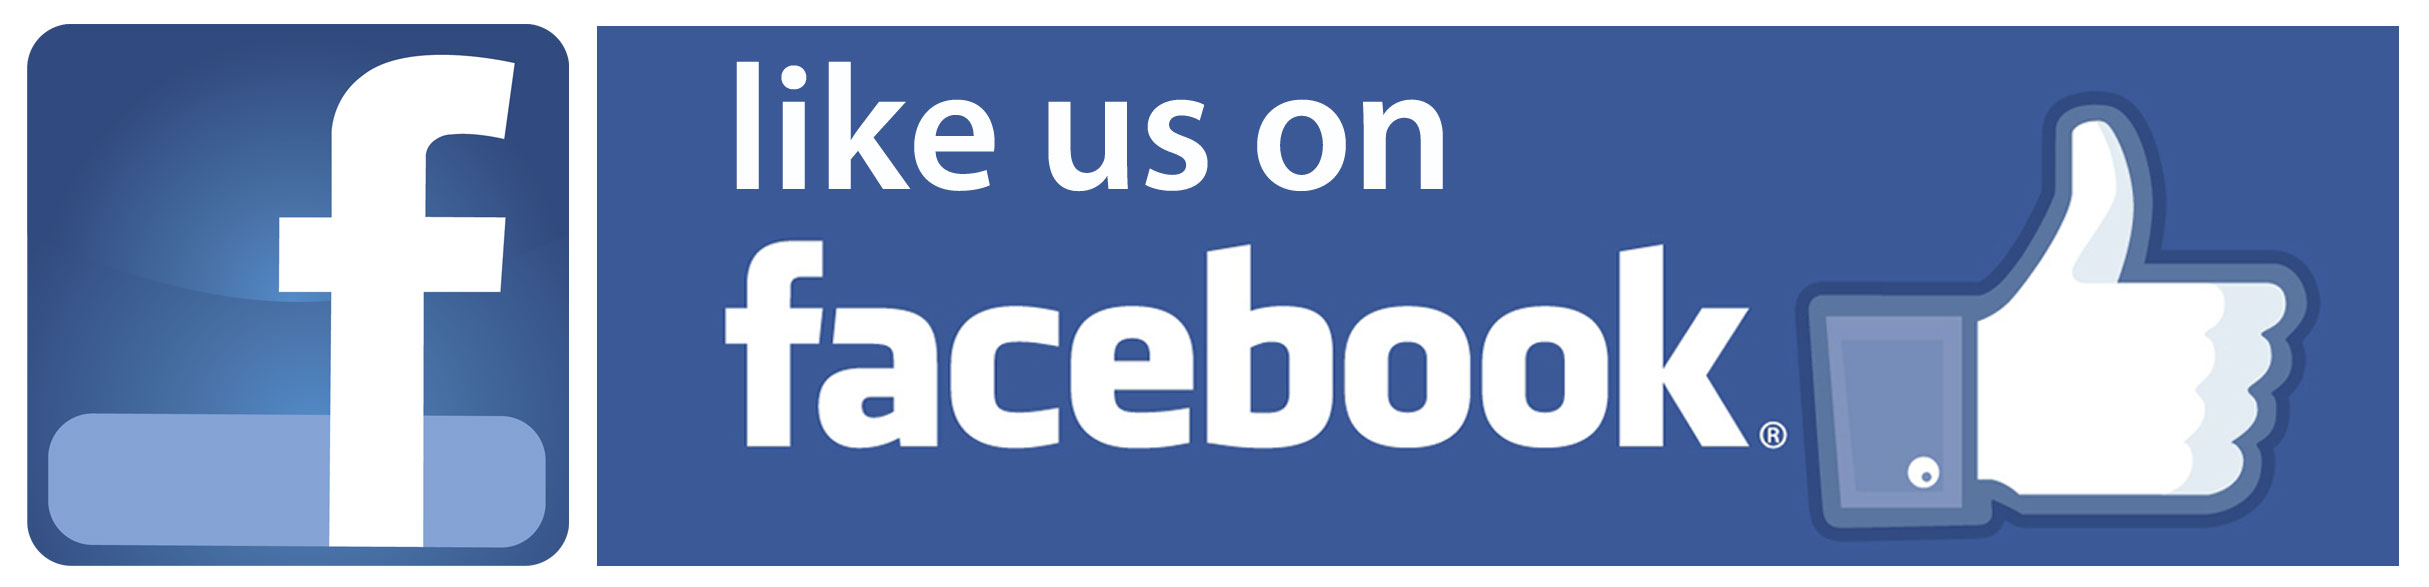 facebook transparent like us 31